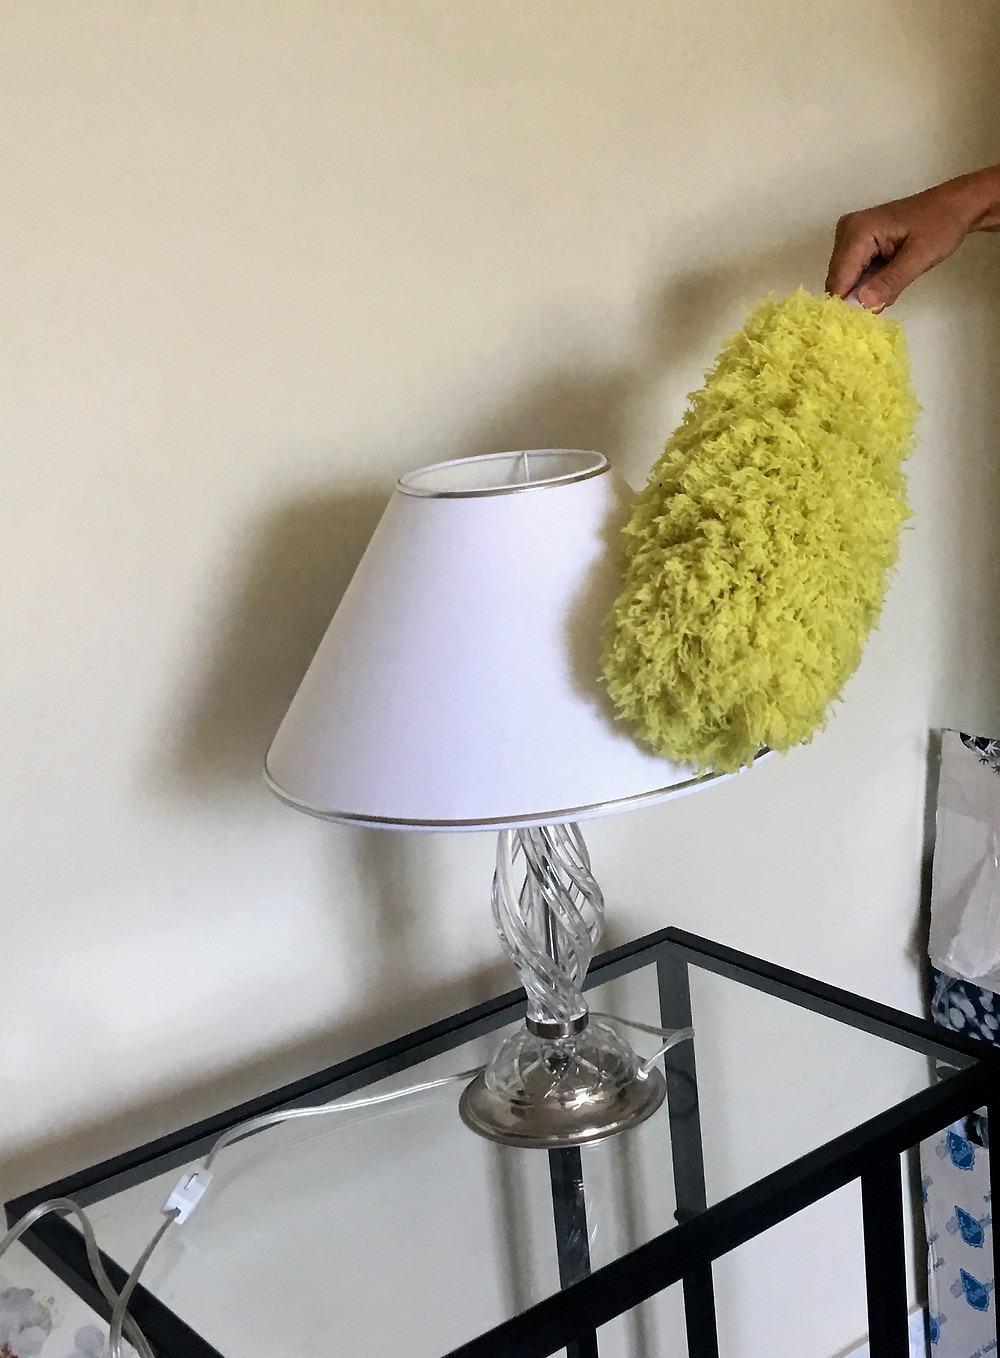 Table lampshade cleaning